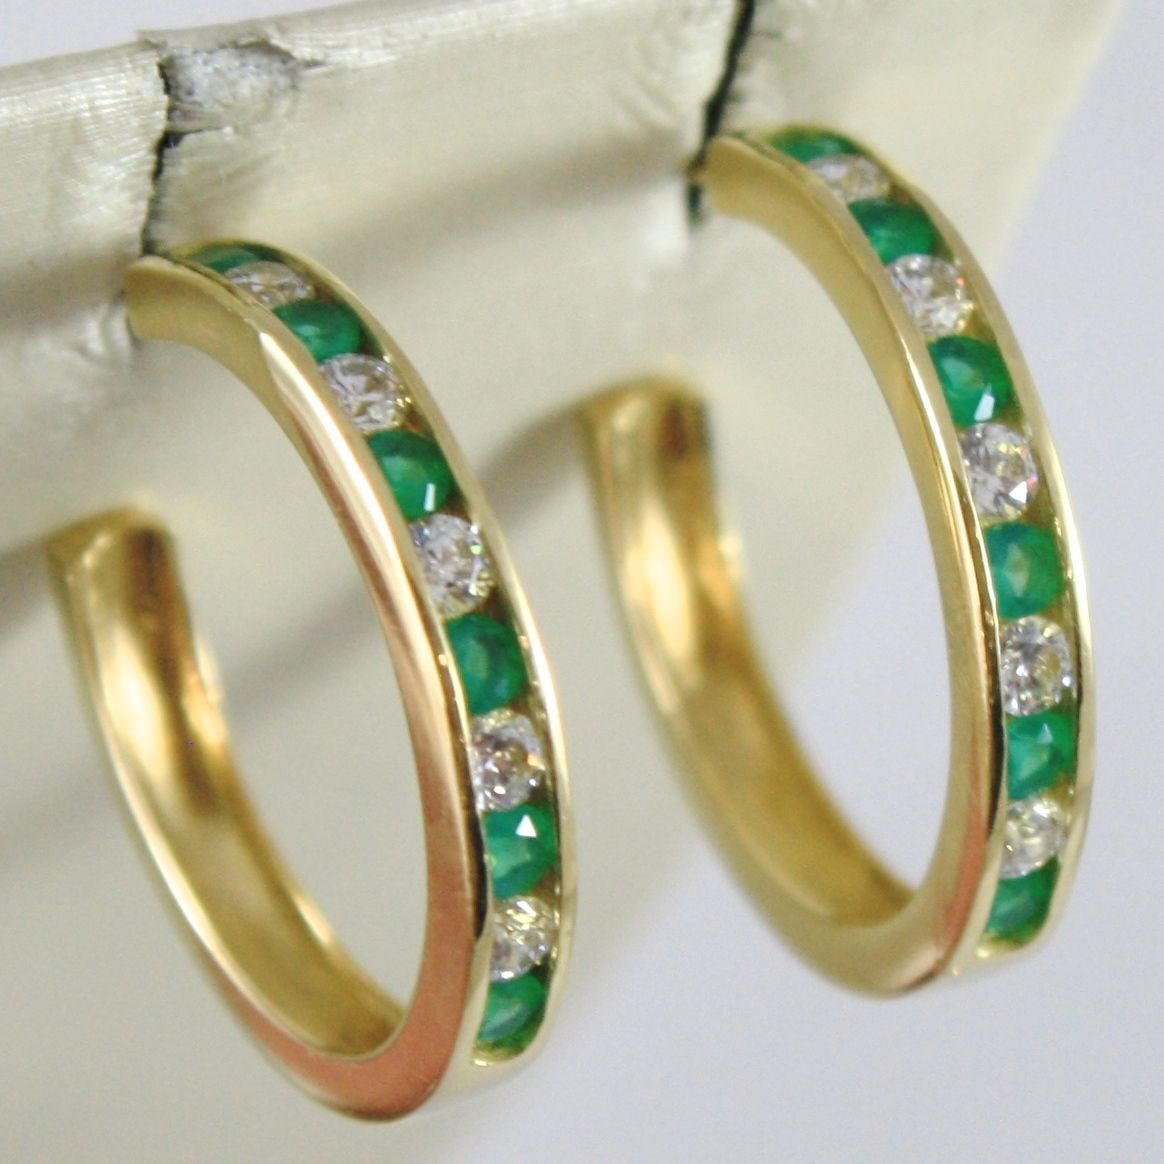 HOOP EARRINGS YELLOW GOLD 750 18K MADE IN ITALY, TOURMALINE GREEN, ZIRCON